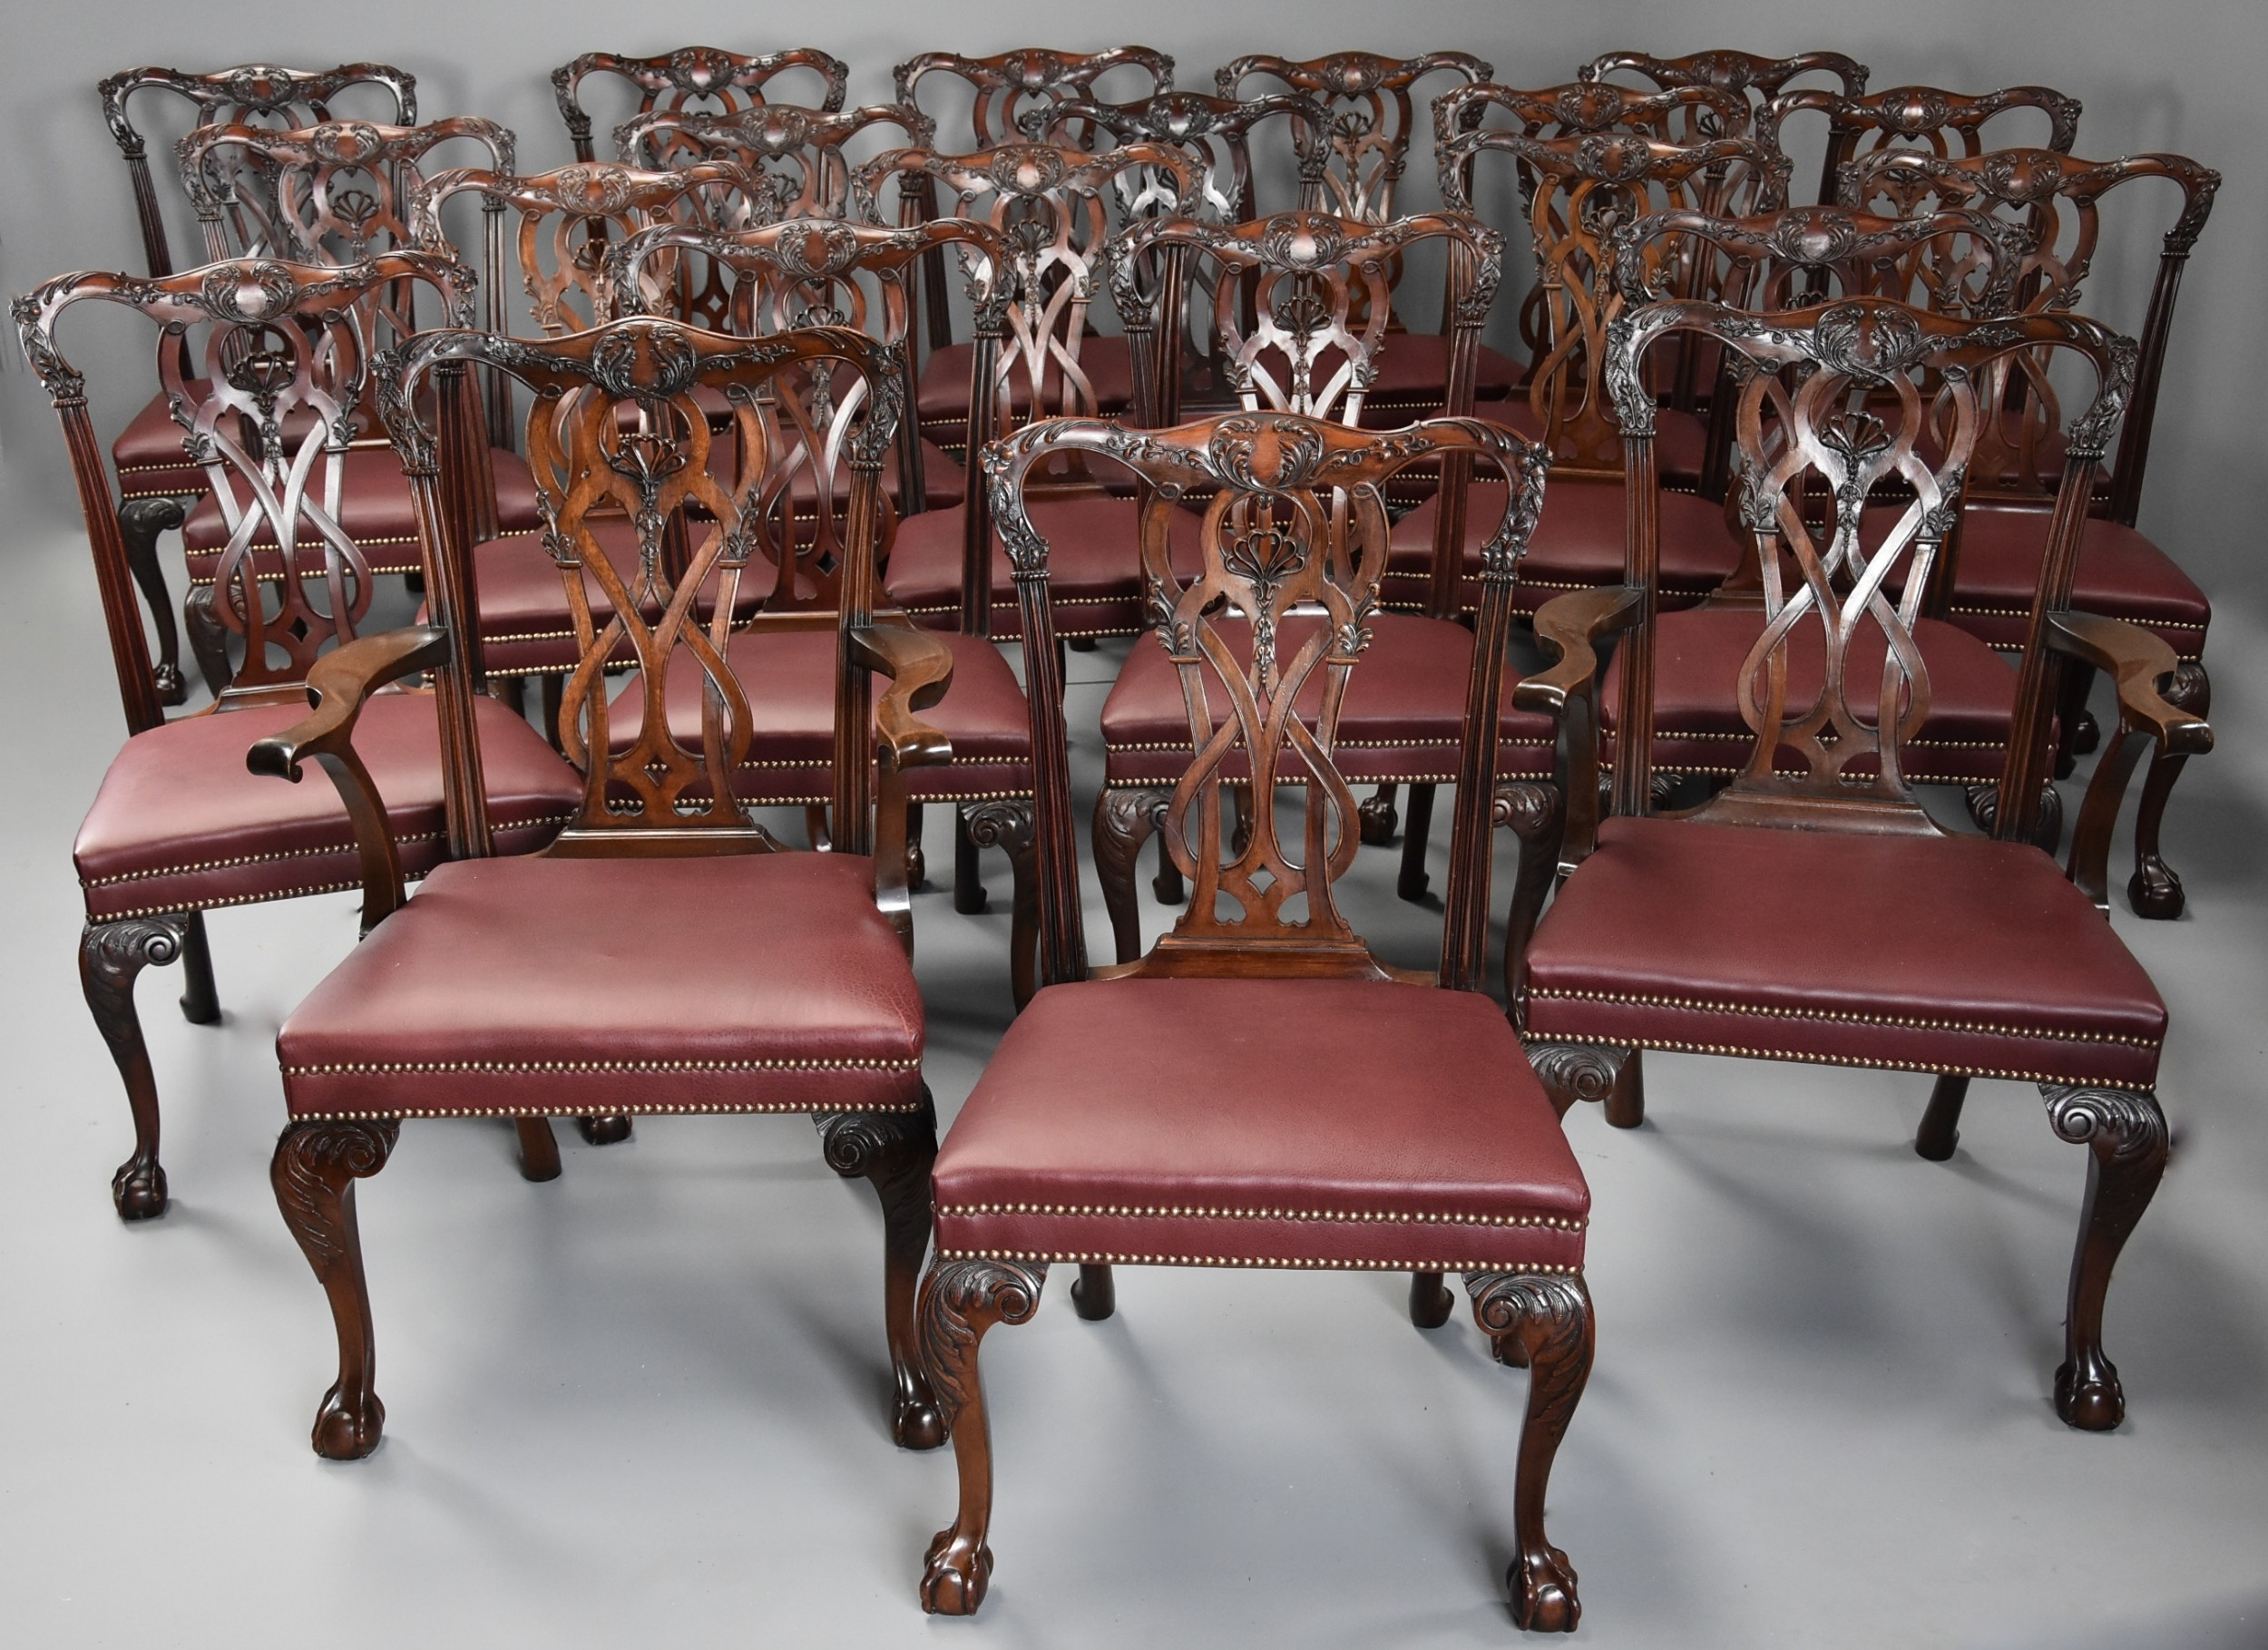 superb quality large set of twenty one late 19thc chippendale style mahogany dining chairs of excellent patina